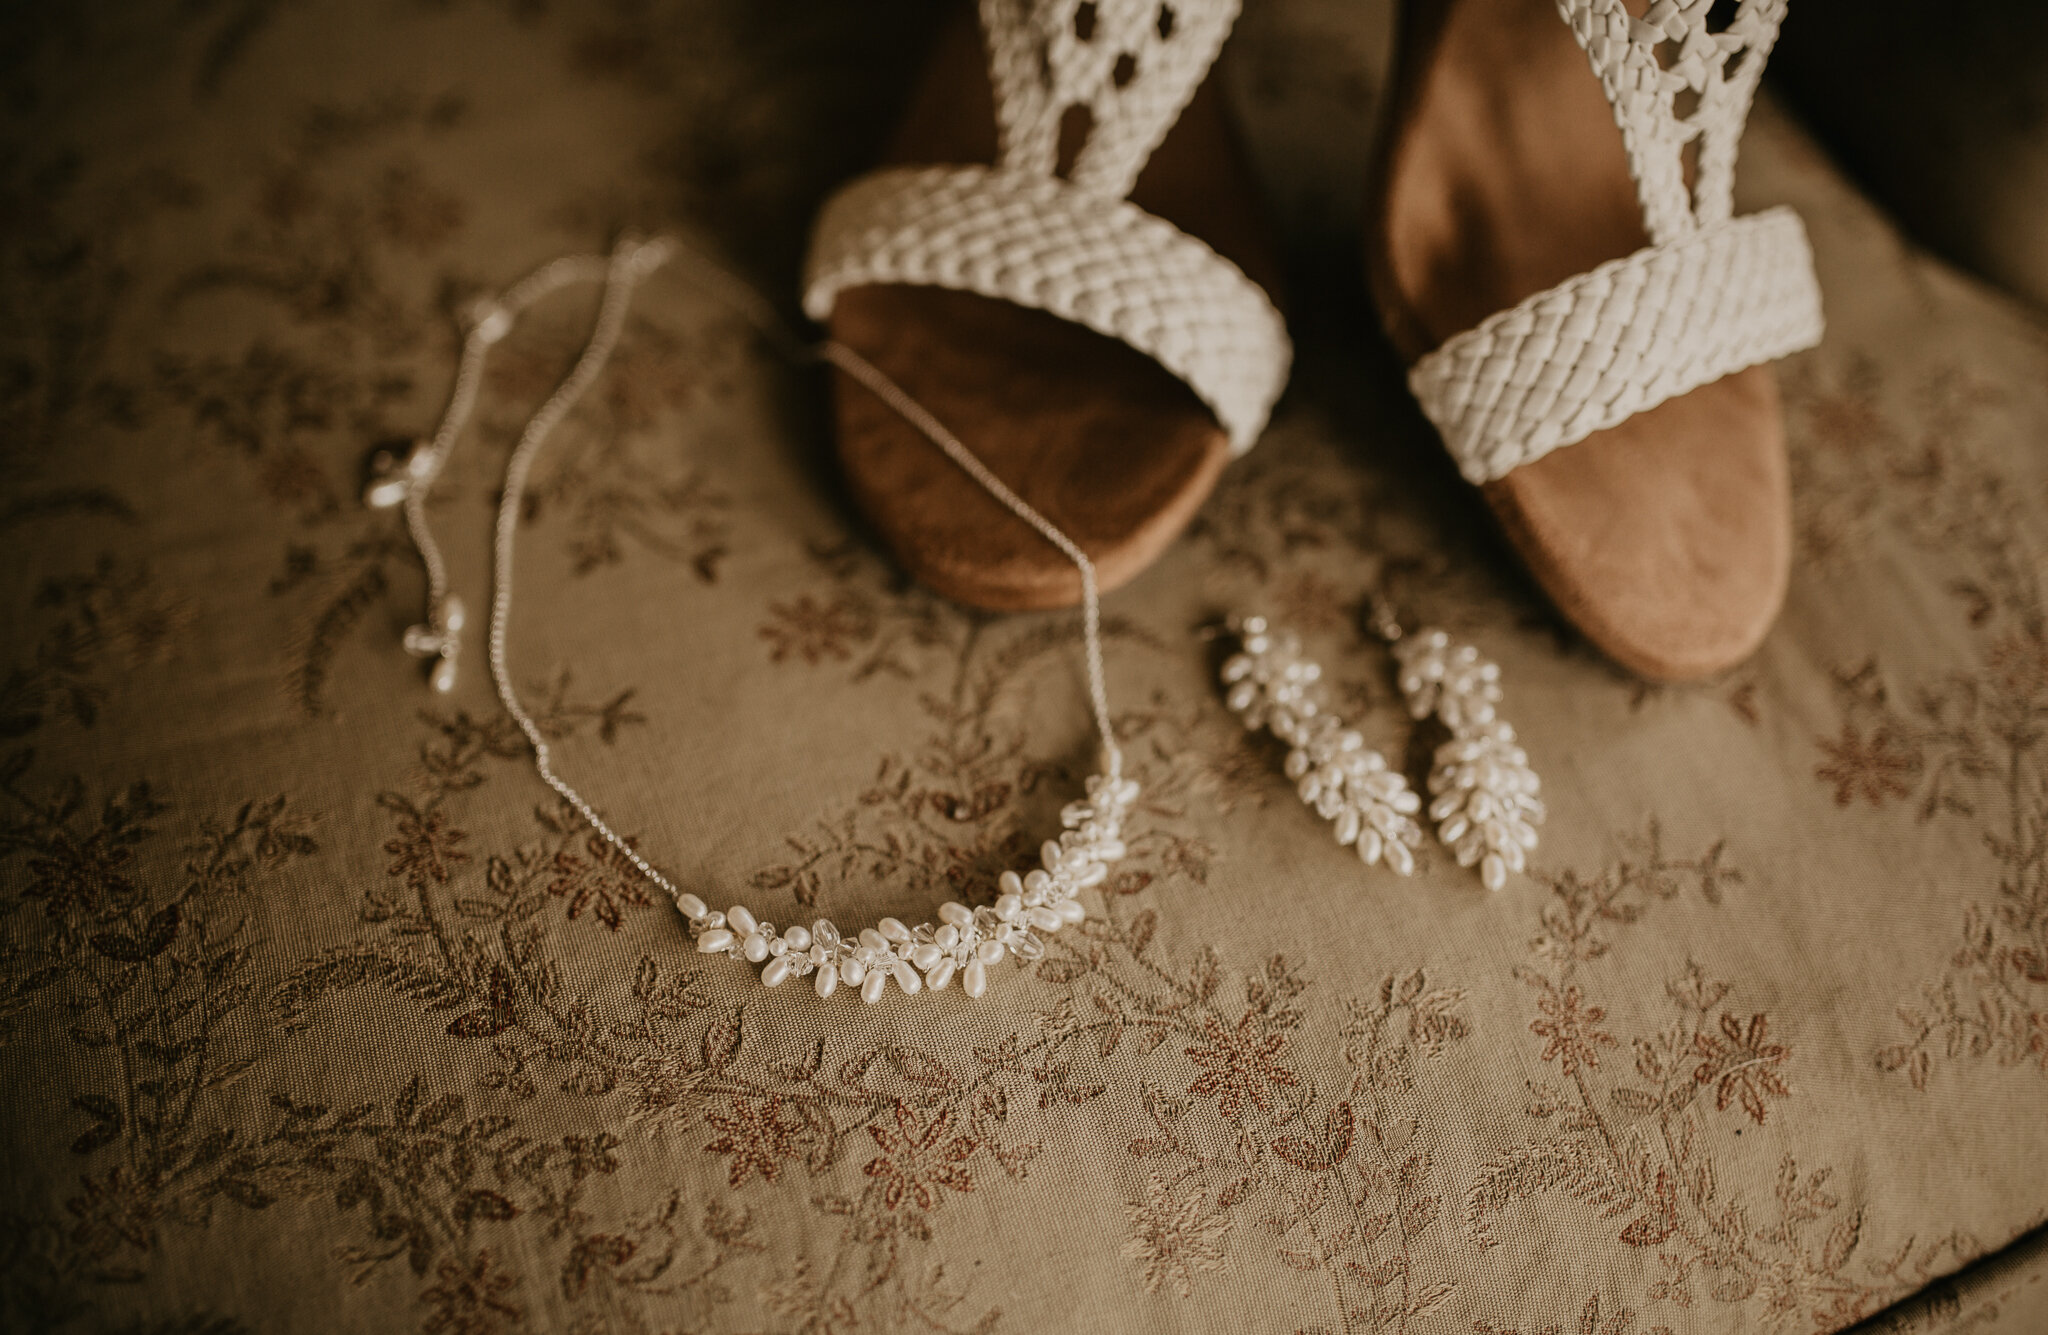 Brides jewelry and shoes for her wedding day